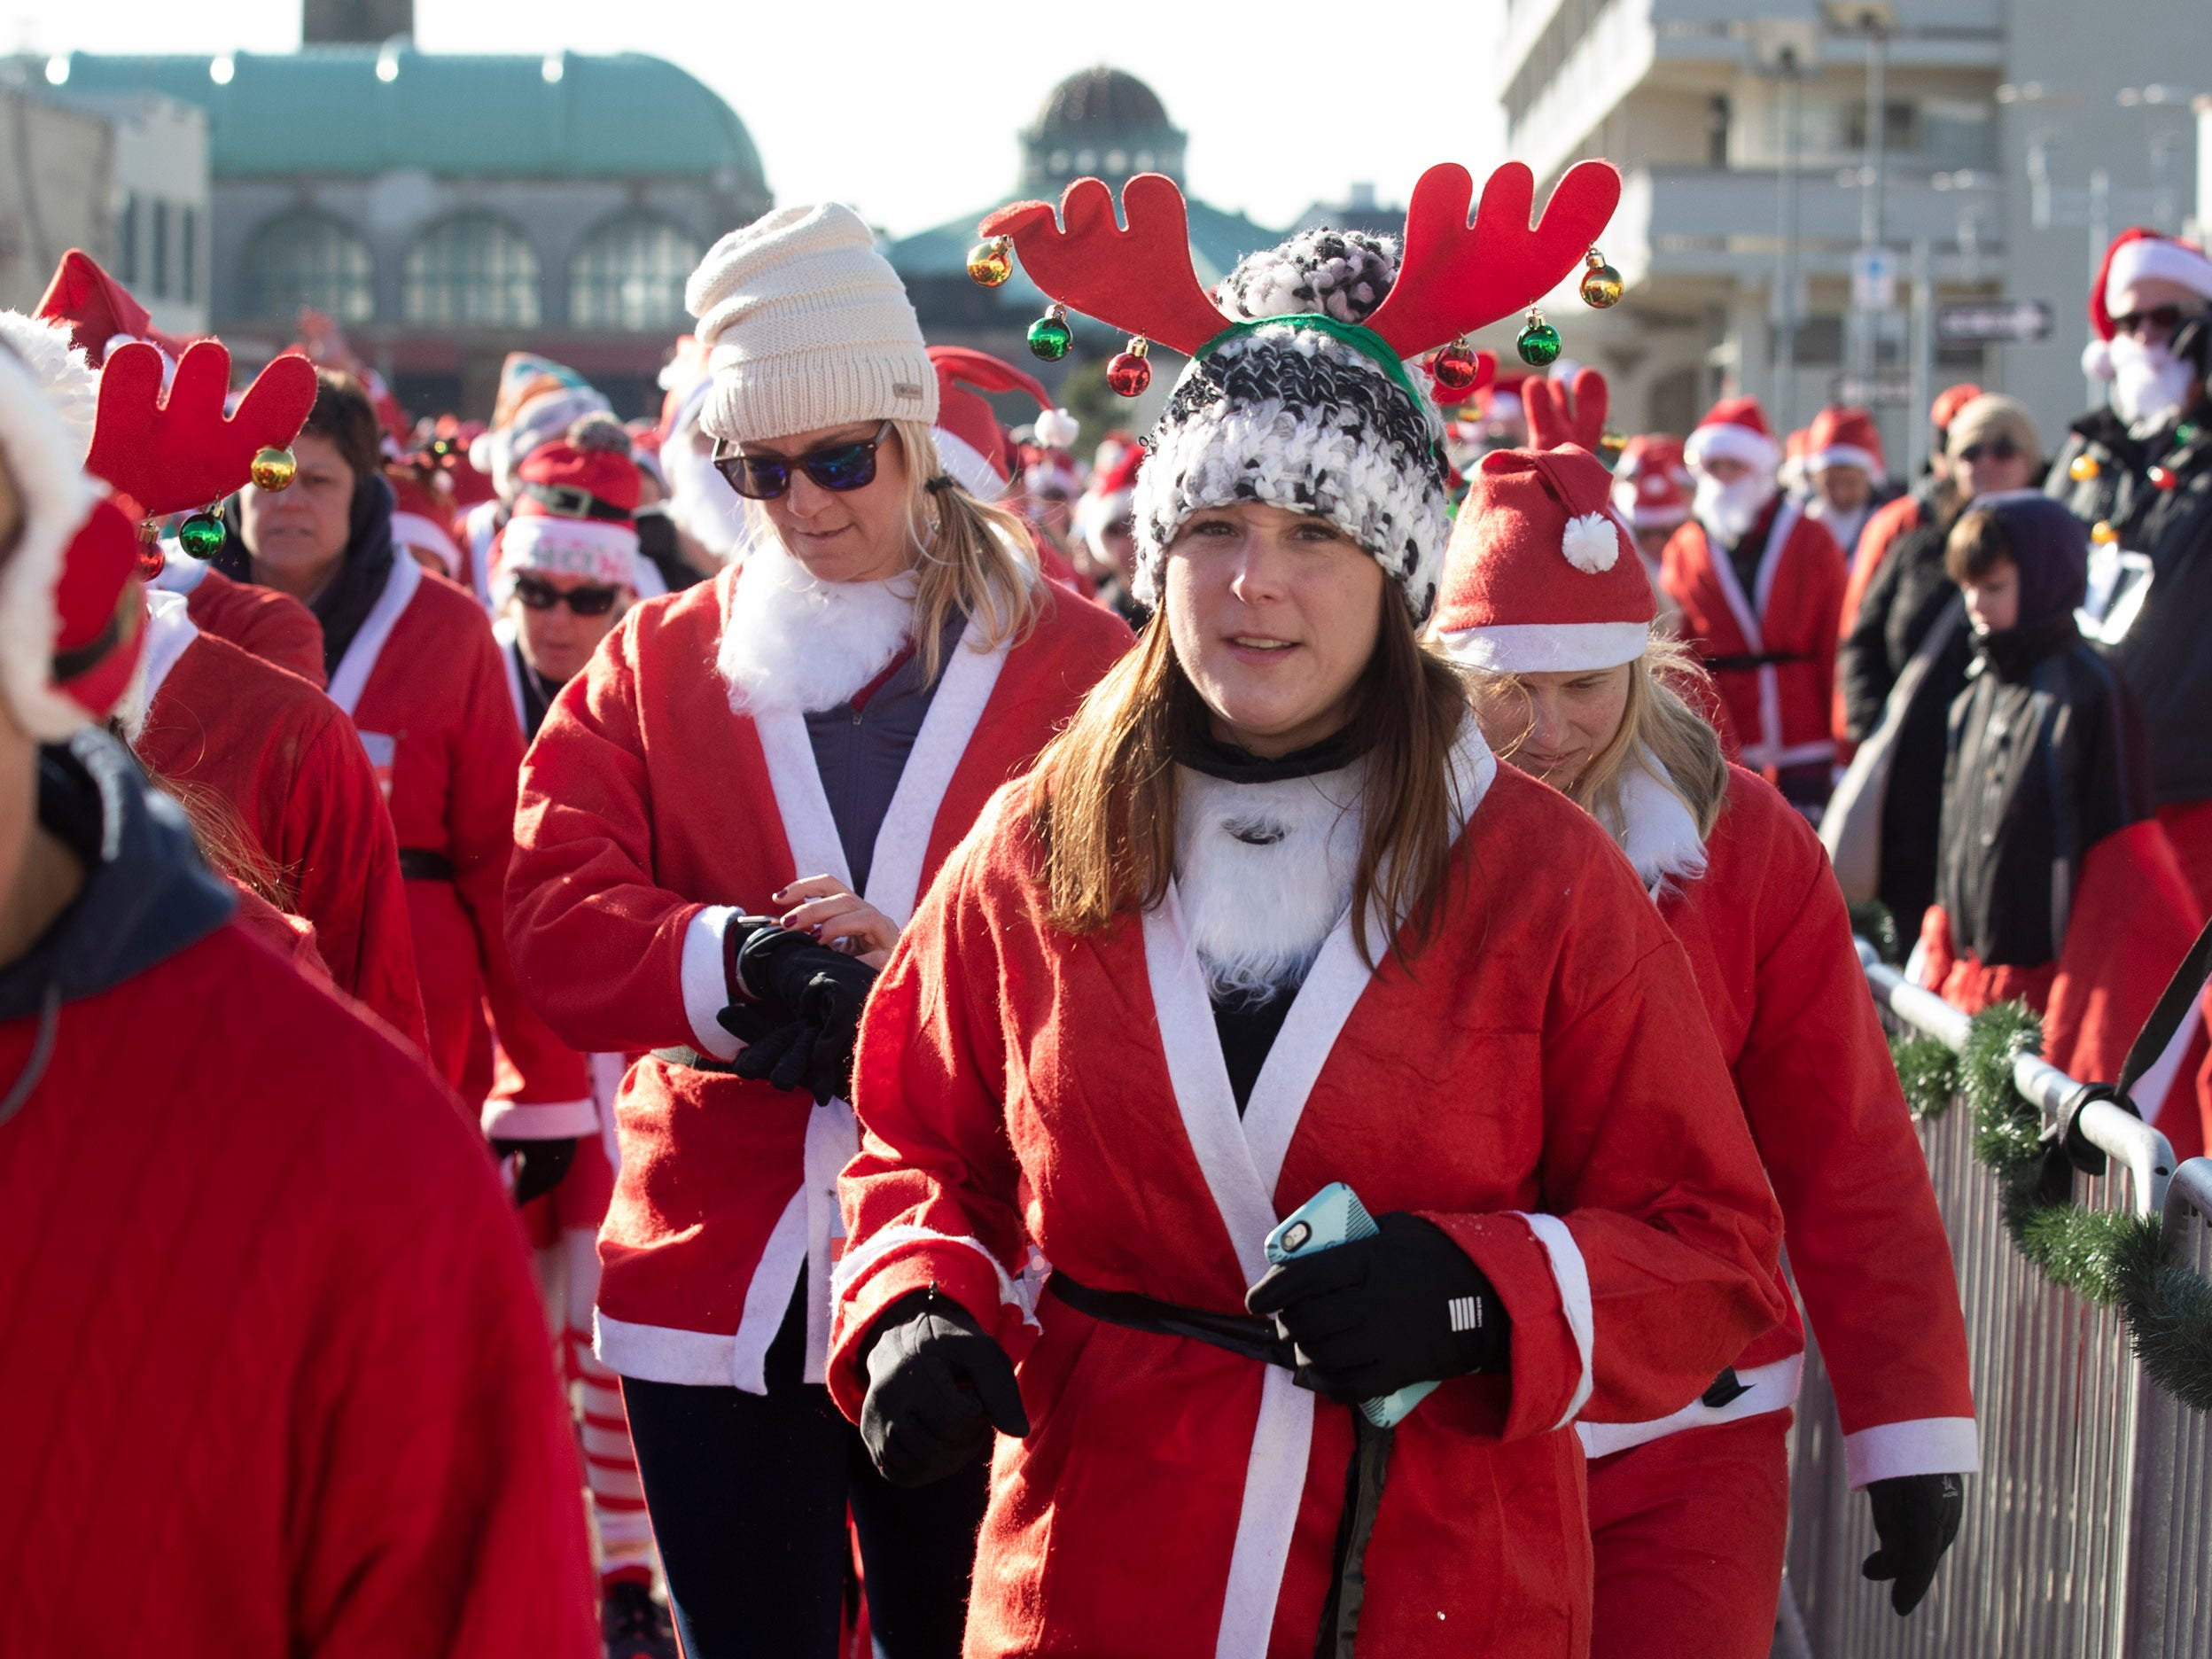 Runners brave the cold to participate in the annual Santa Run 5K in Asbury Park on December 8, 2018.